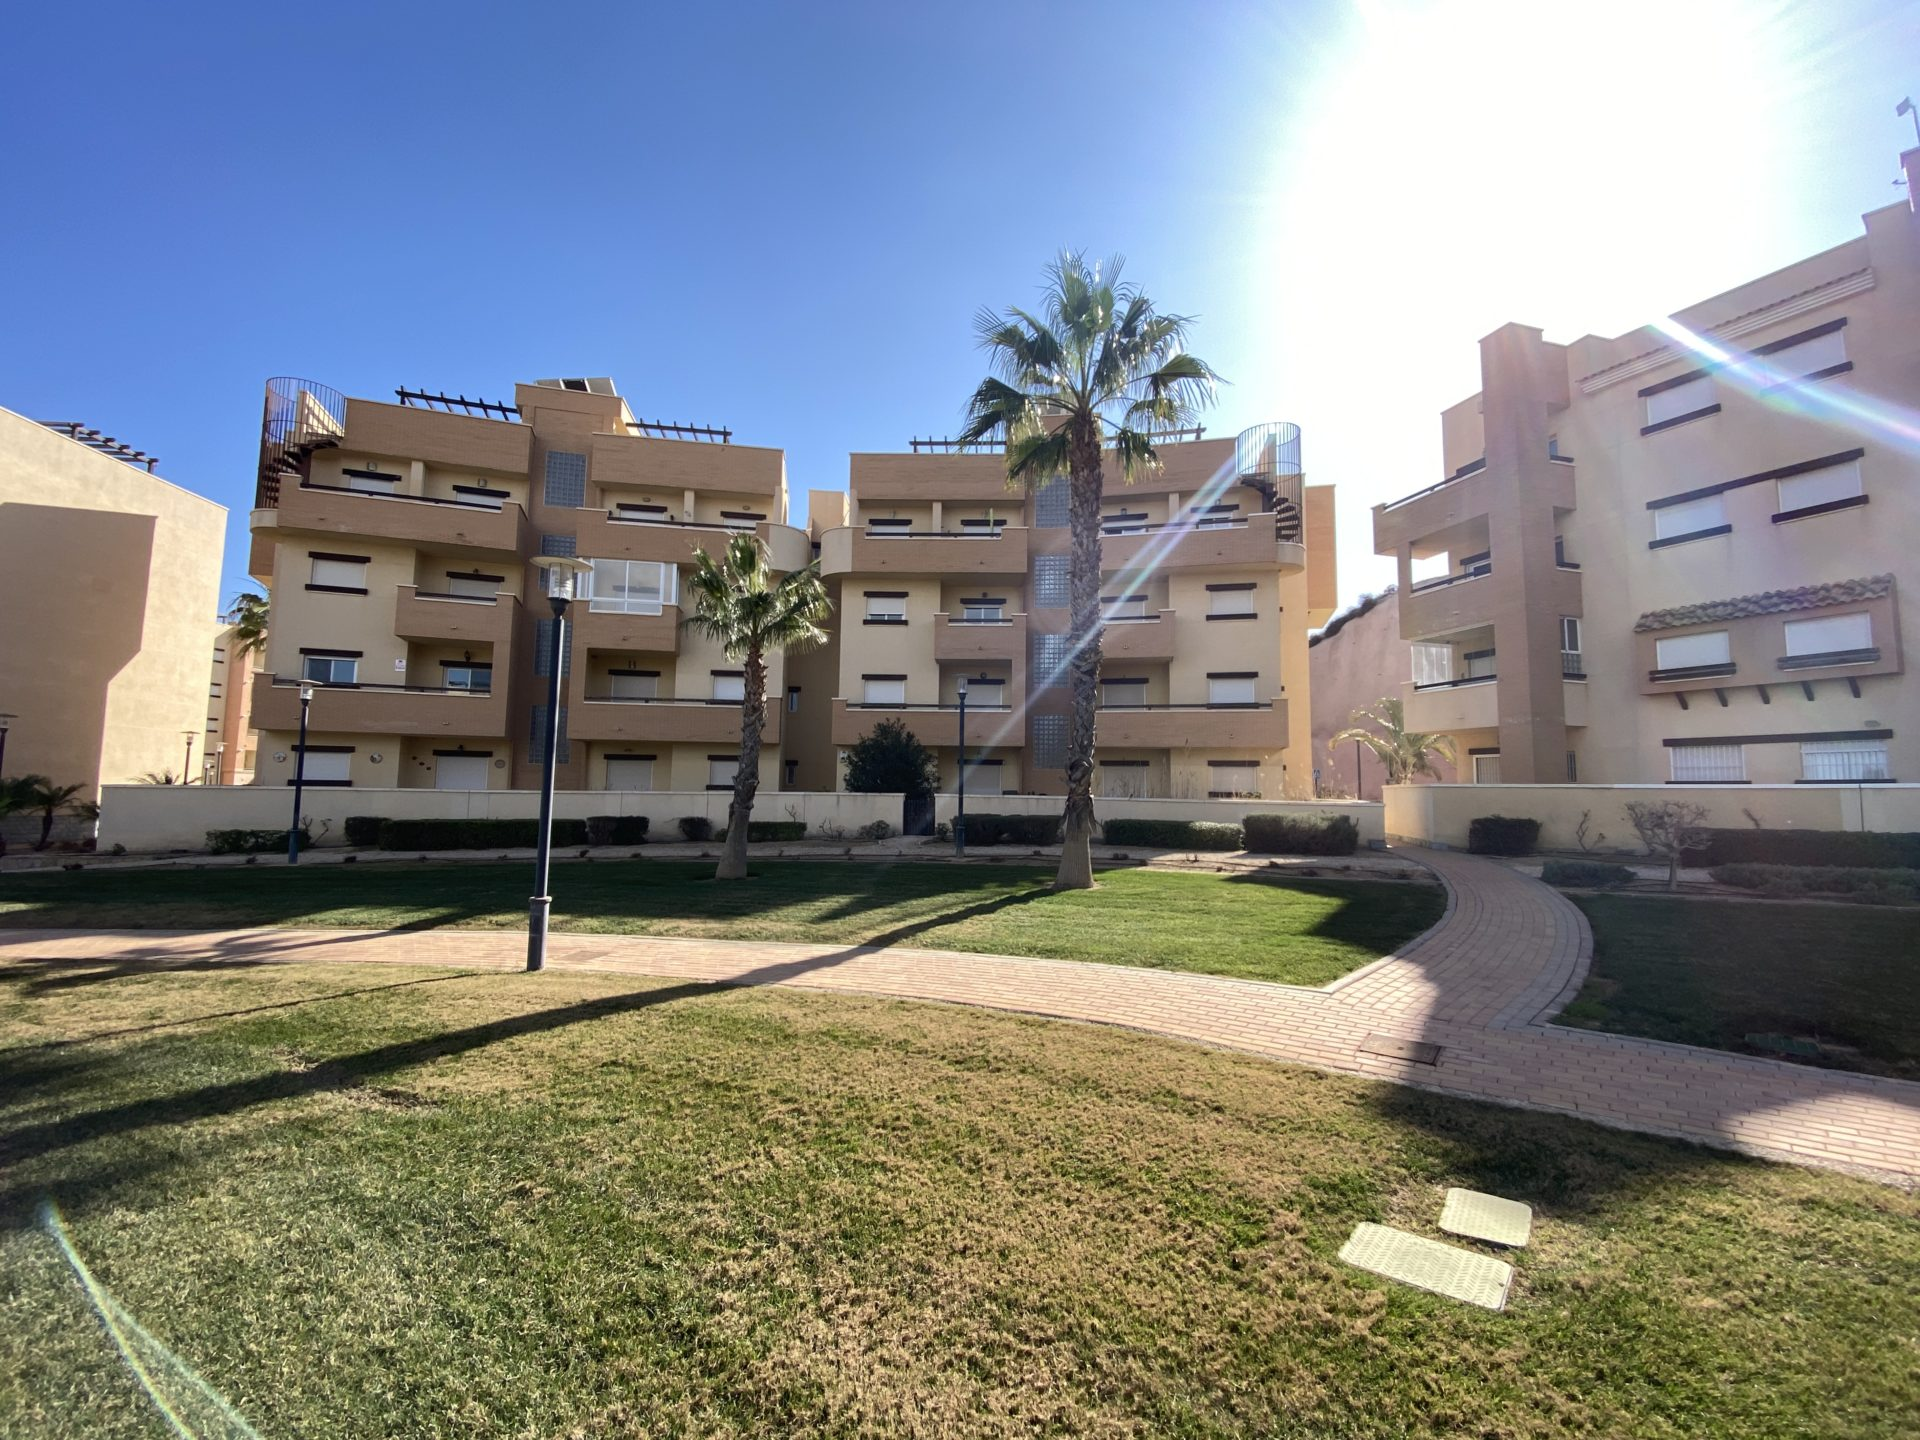 3 Bedroom 2 Bathroom TURNKEY Apartment on La Tercia